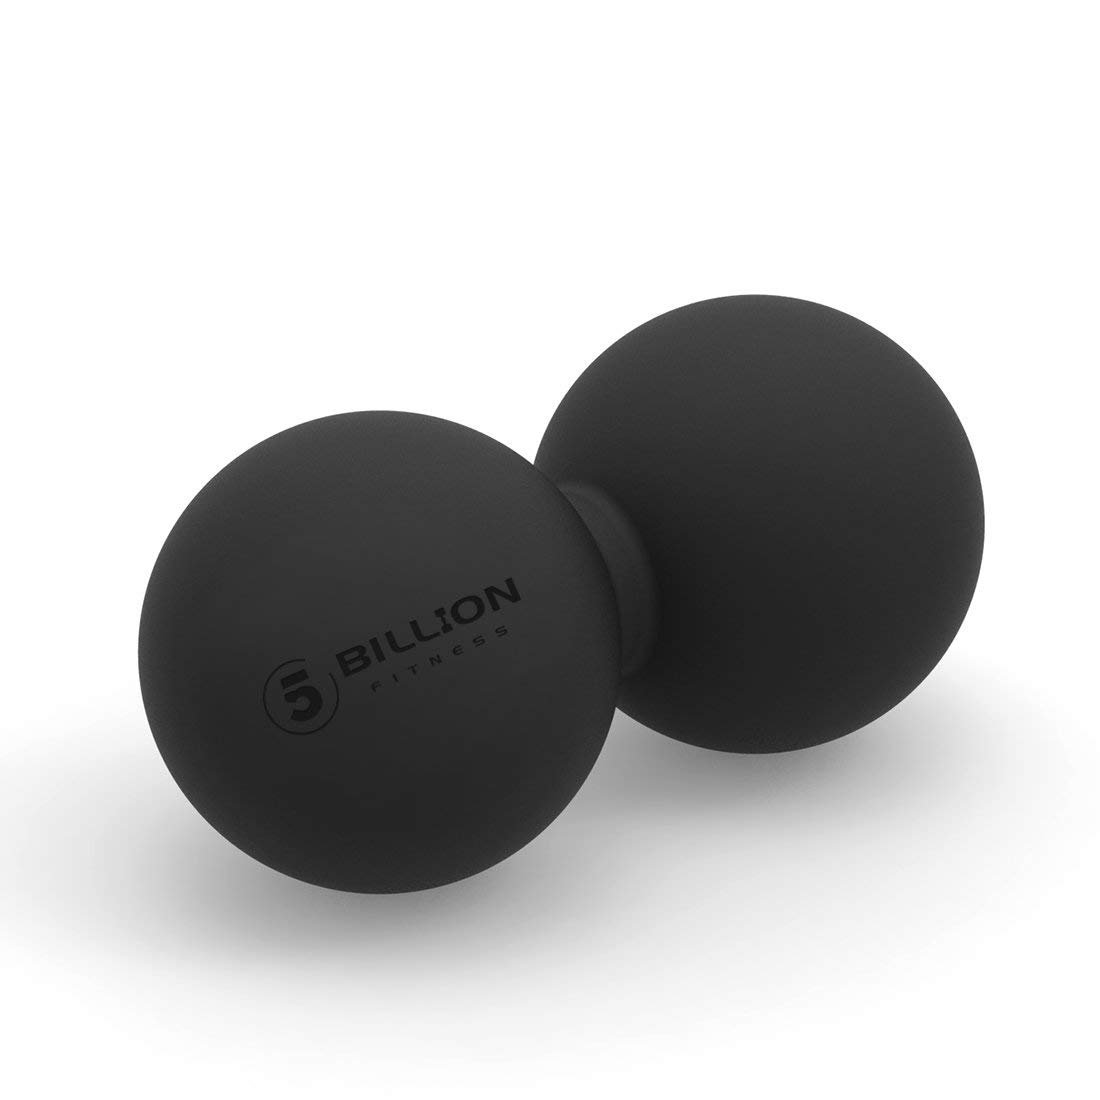 5BILLION Pelota Masaje Double Massage Ball - Pelota Lacrosse&Balon ...